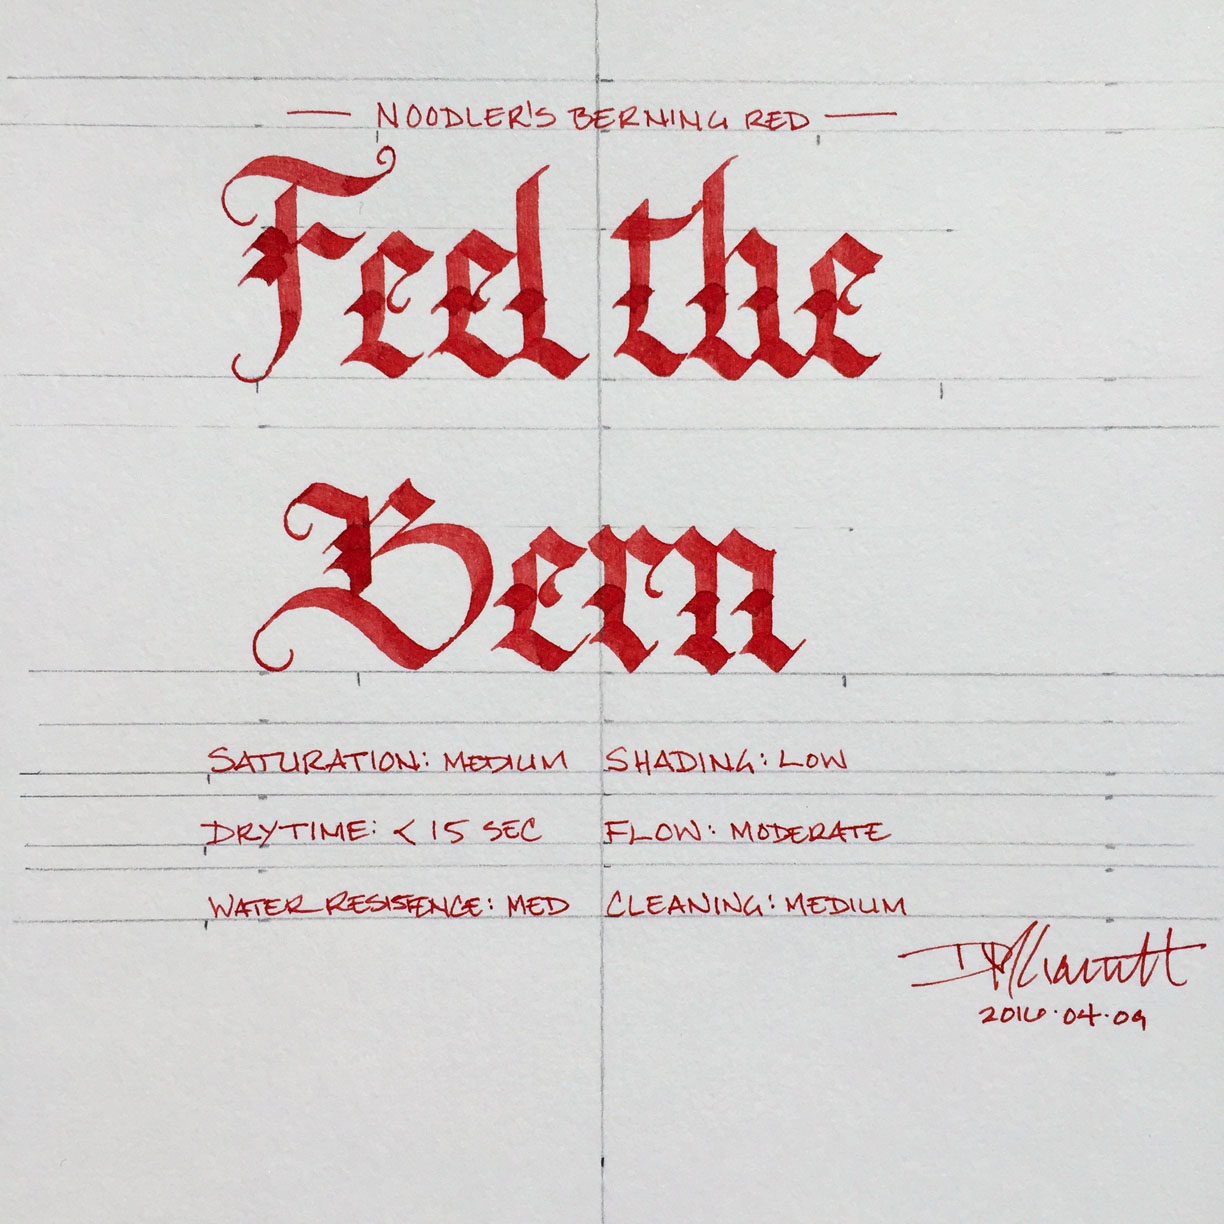 Noodler's Berning Red